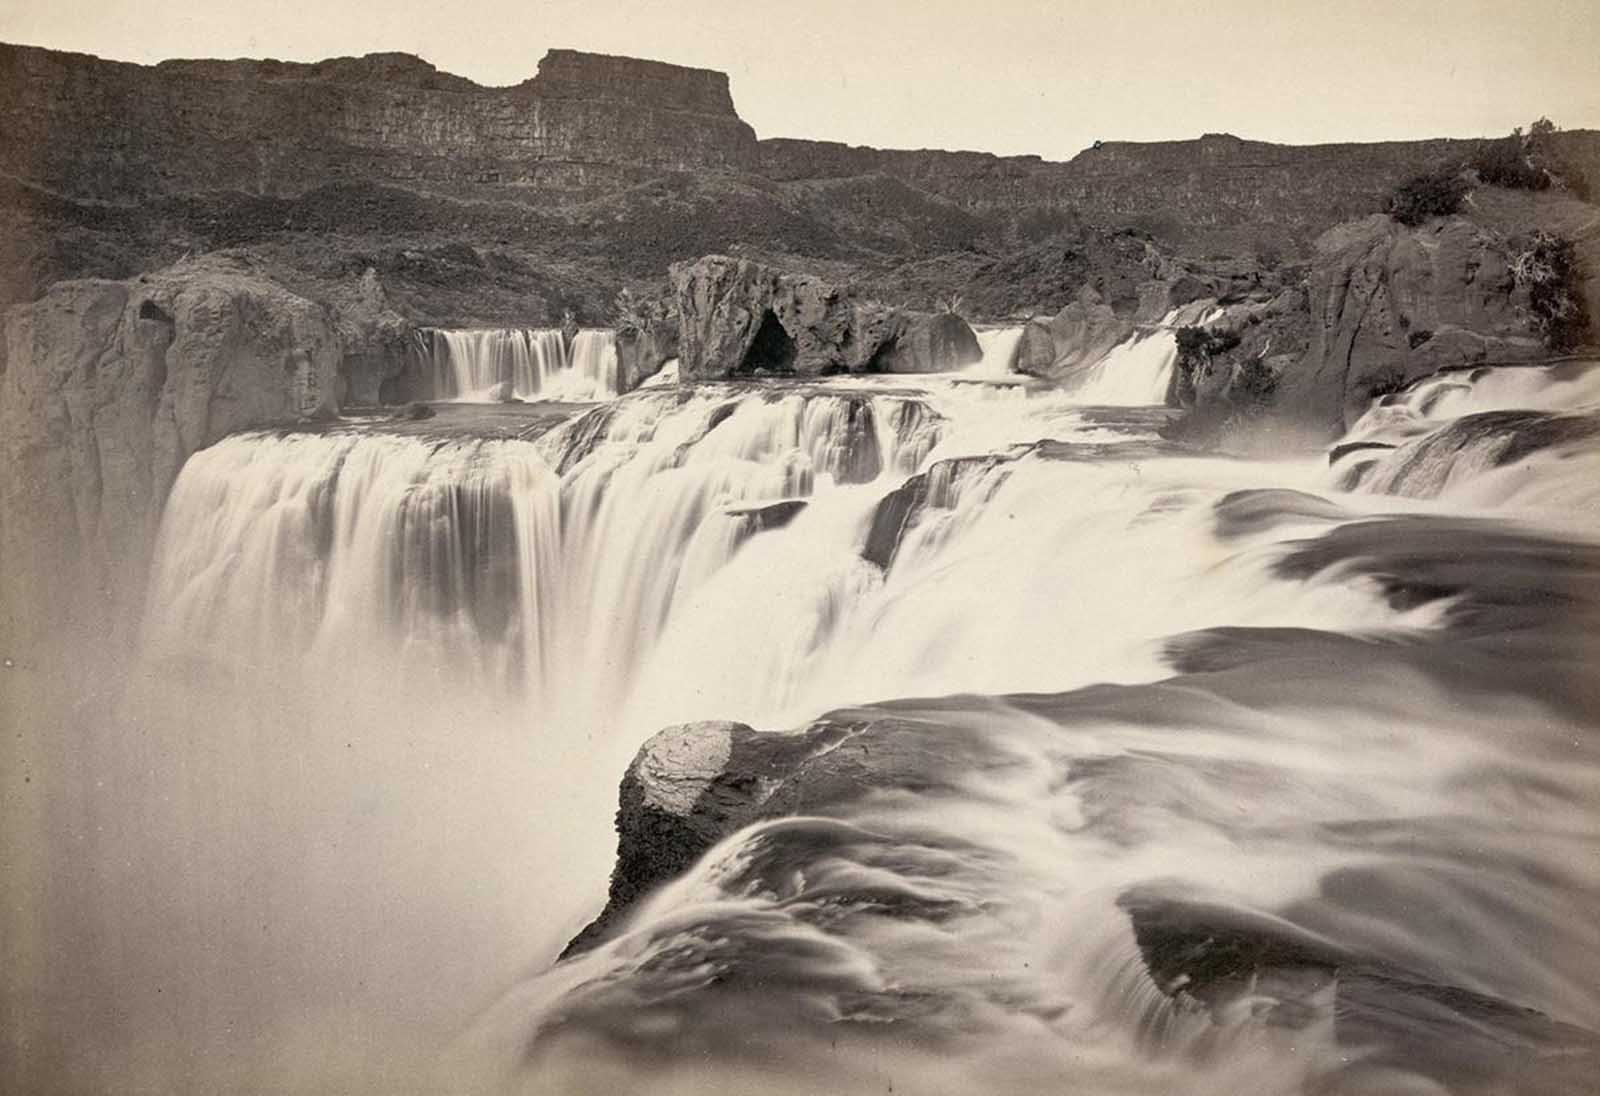 Shoshone Falls, Snake River, Idaho. A view across top of the falls in 1874.